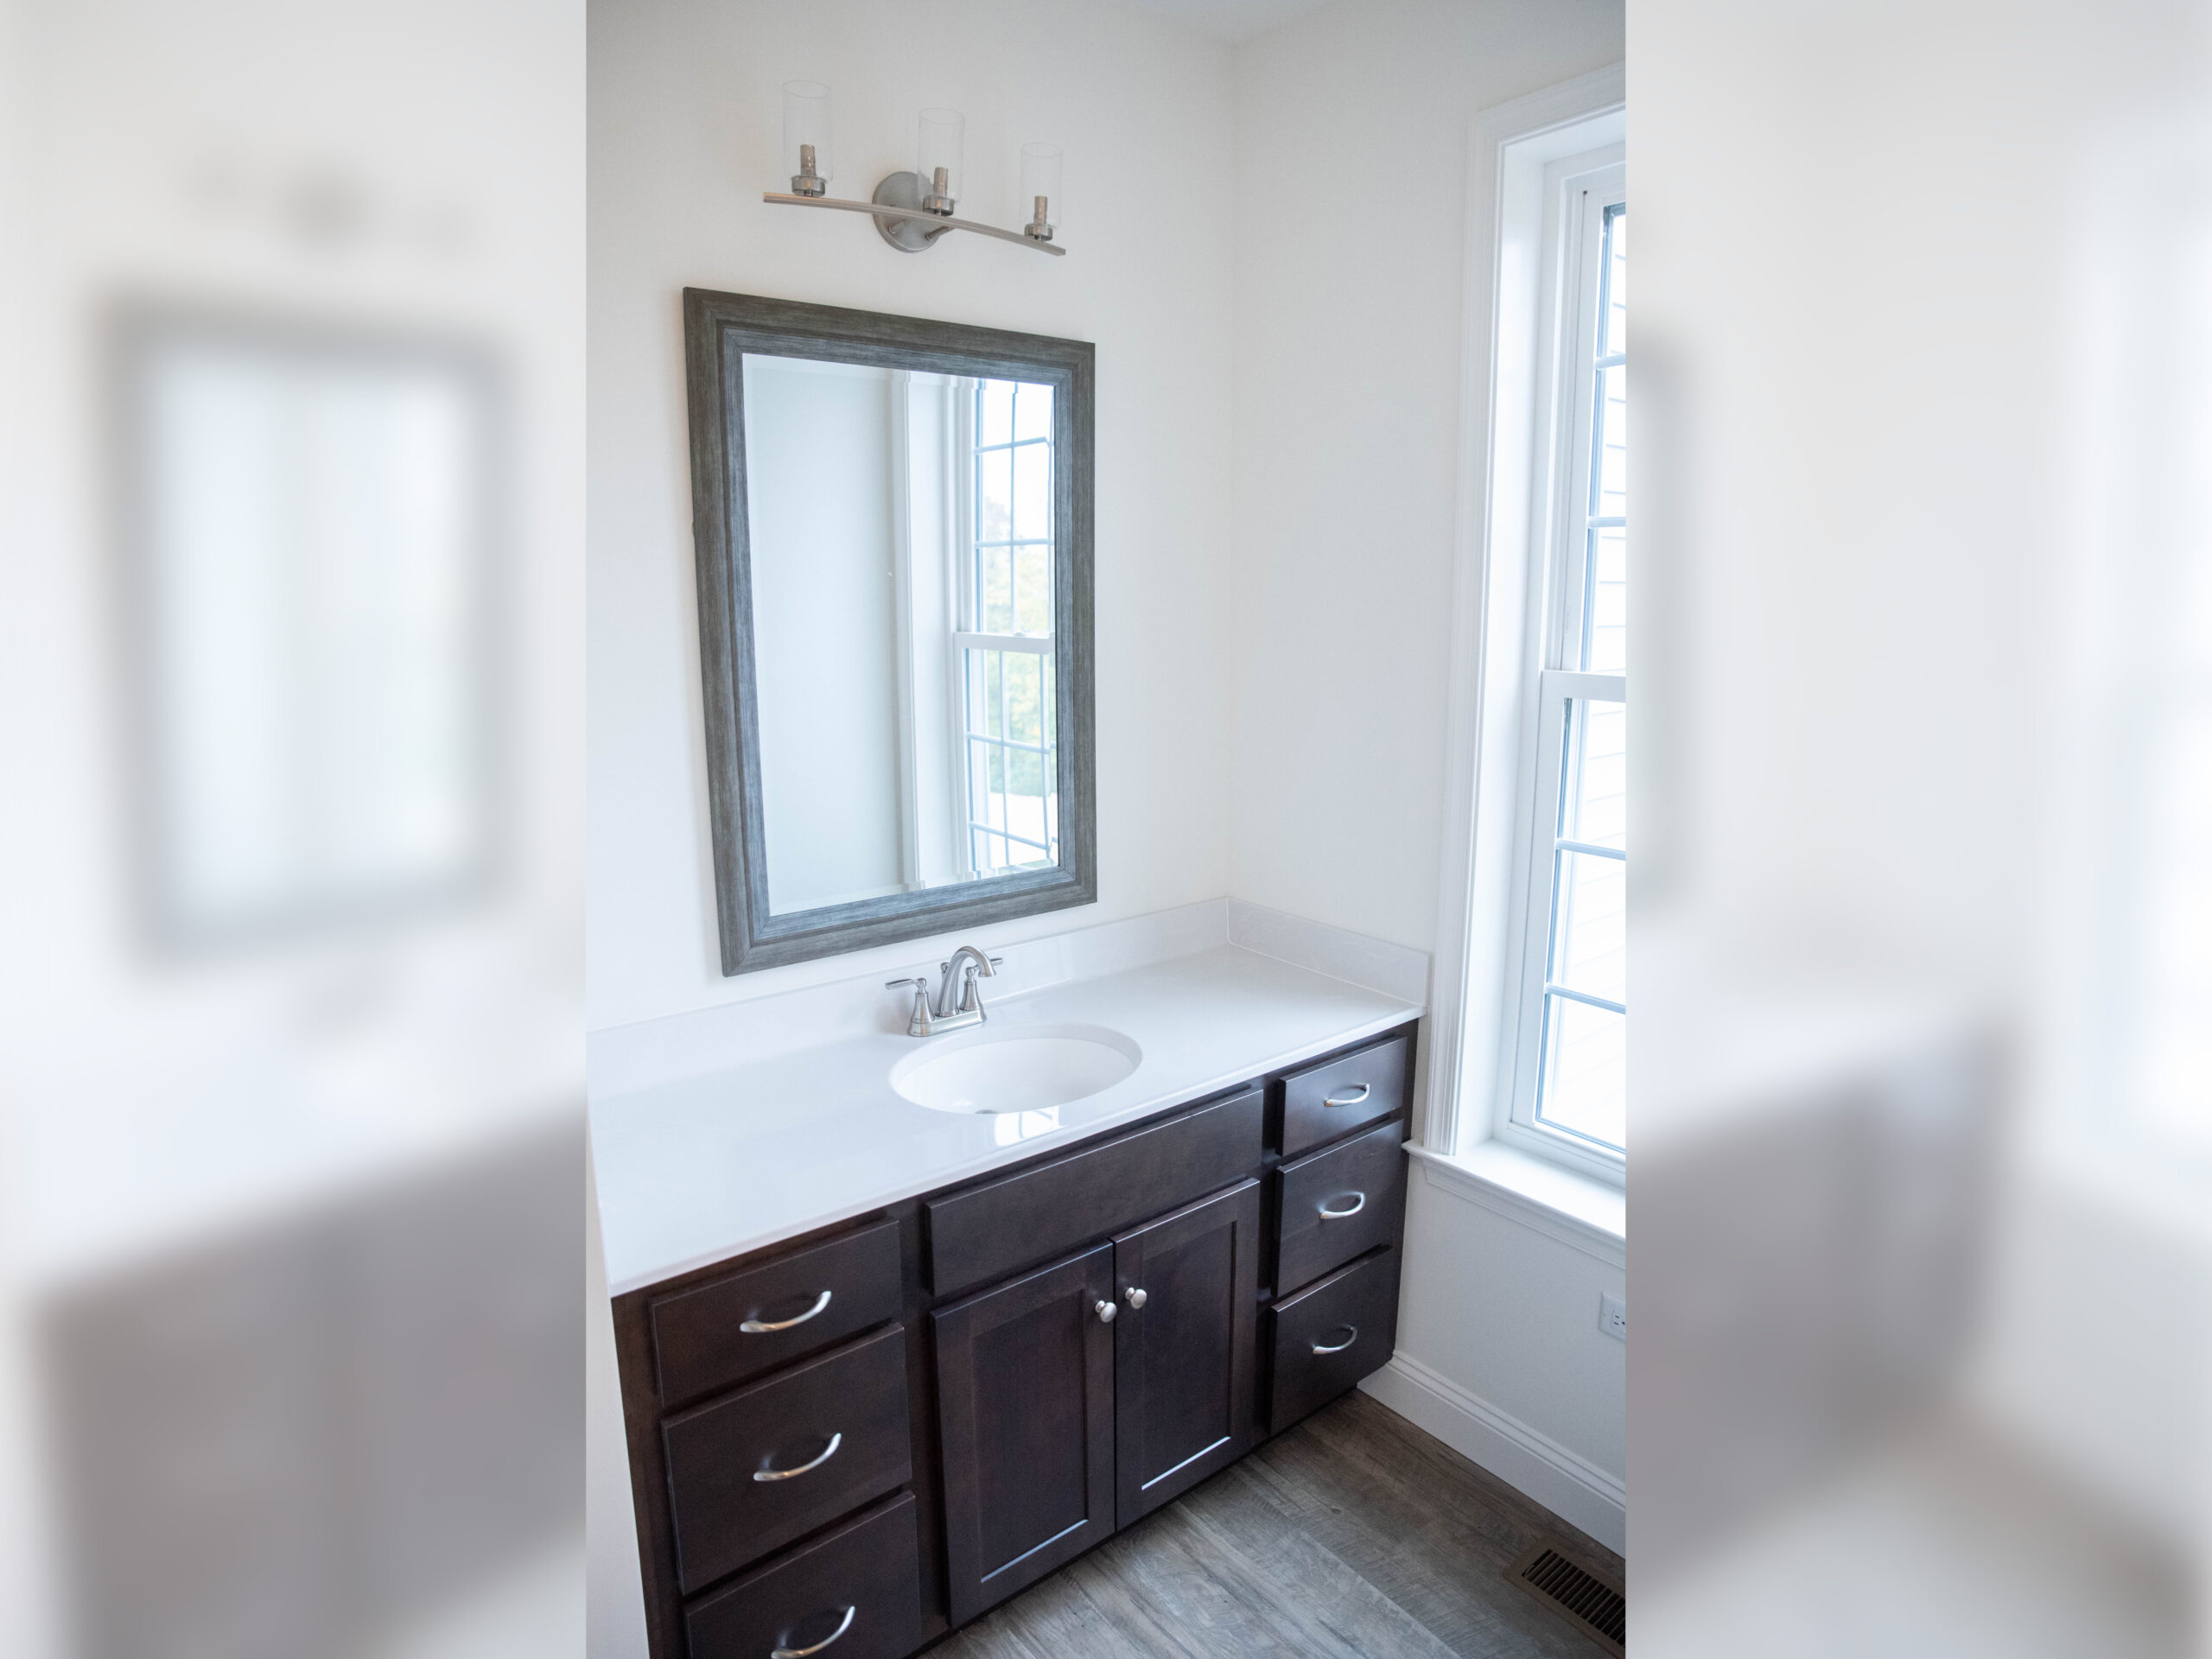 Full bathroom with Cherry stained cabinetry, white cultured marble countertops, white walls and a mirror and vanity lights